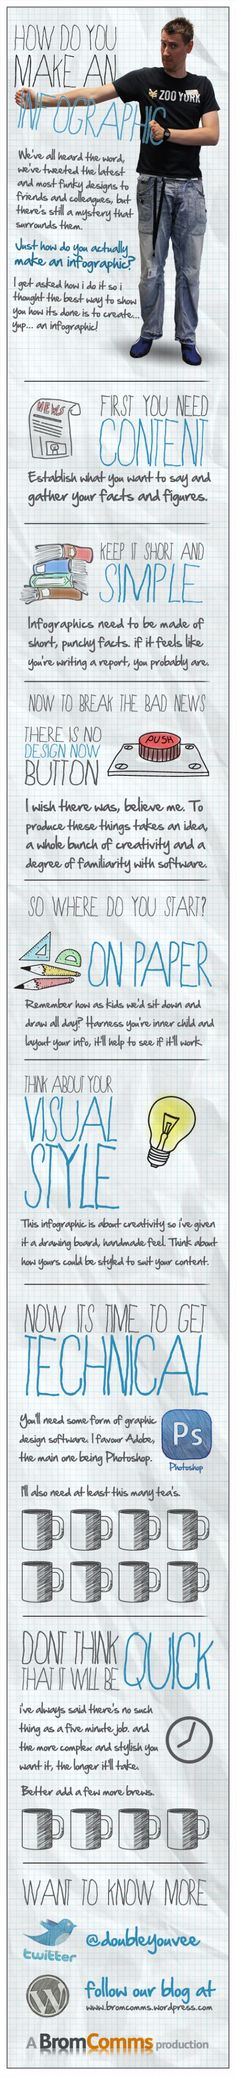 An Infographic on how to make an Infographic